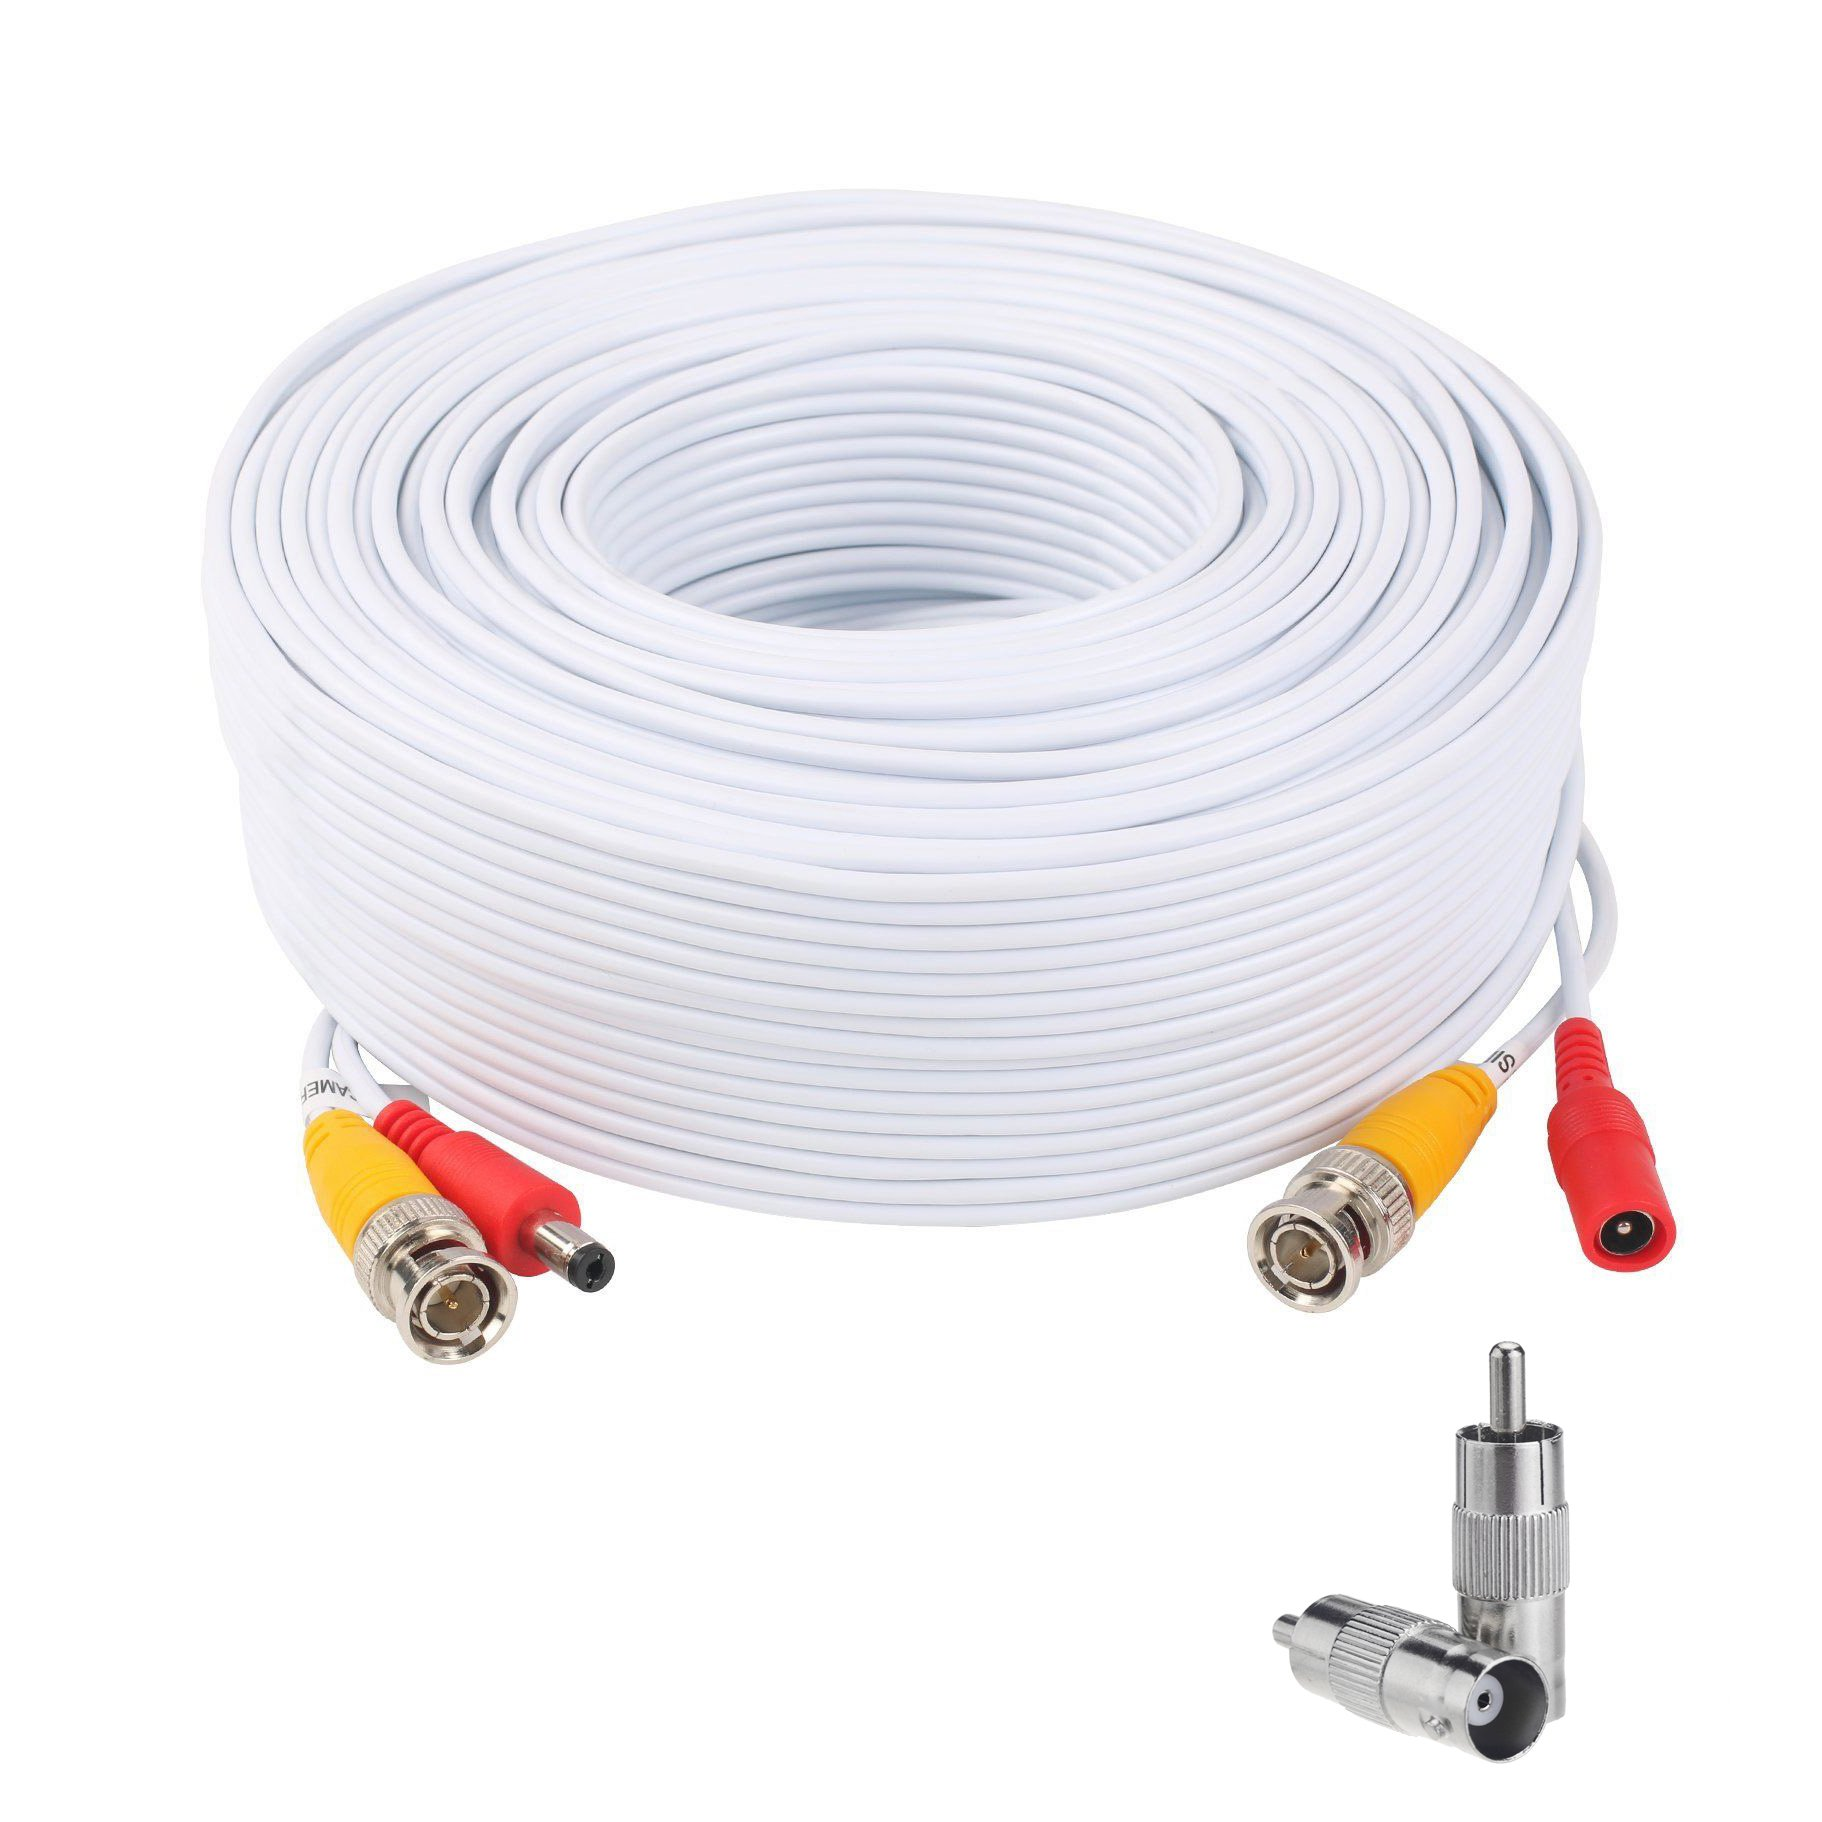 Lknewtrend 300 Feet Pre-Made All-in-One Siamese BNC Video and Power Cable Wire Cord with Two BNC to RCA Connectors for CCTV Security Camera & DVR (White) by Lknewtrend